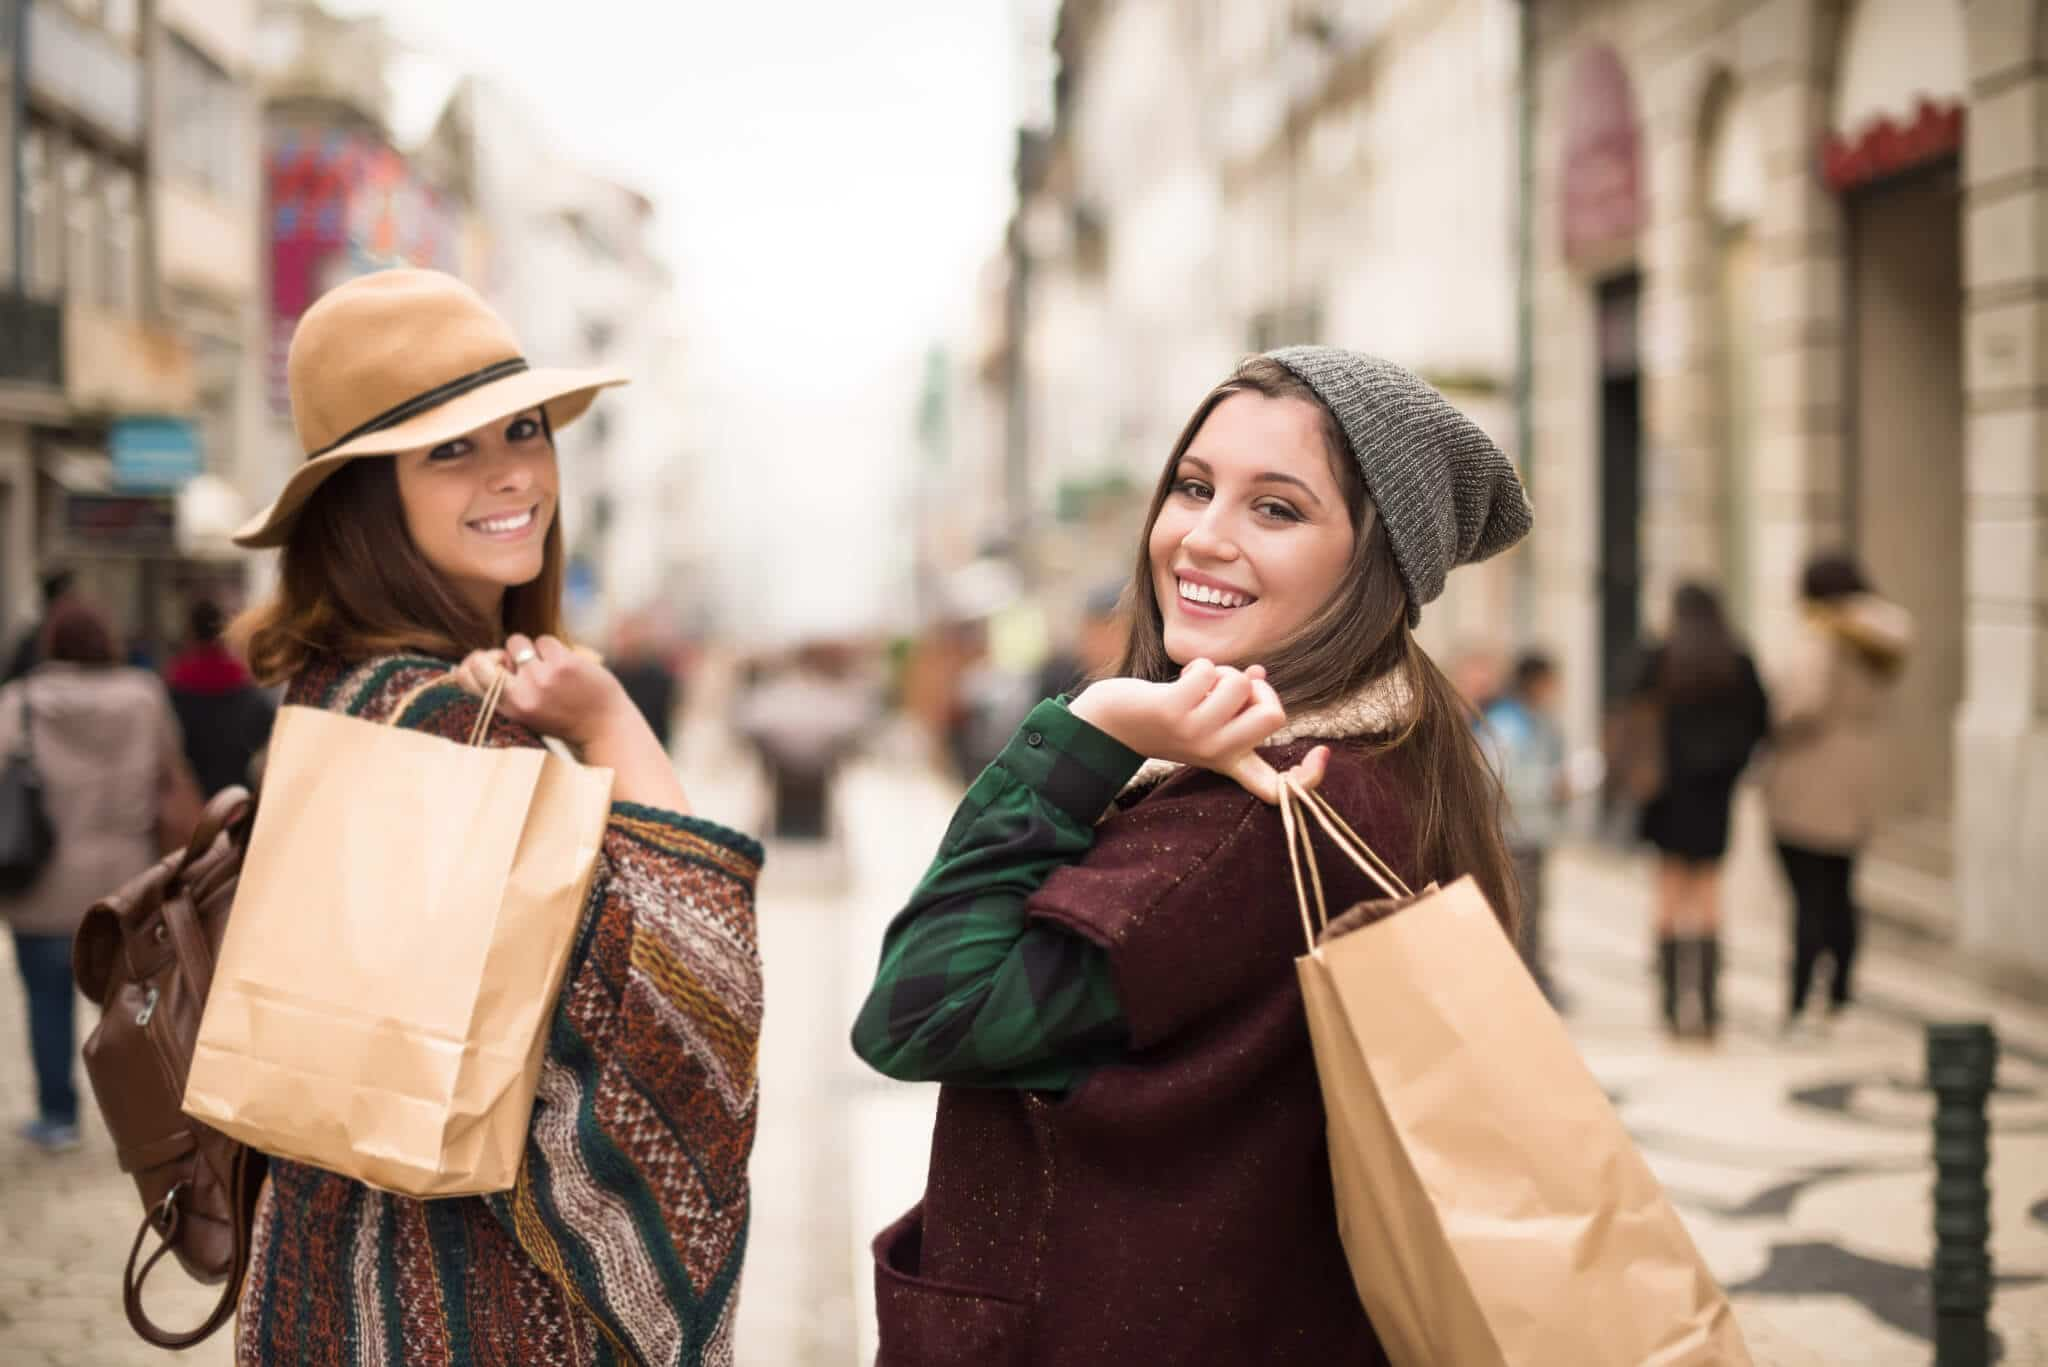 Women shopping for autumn fashion